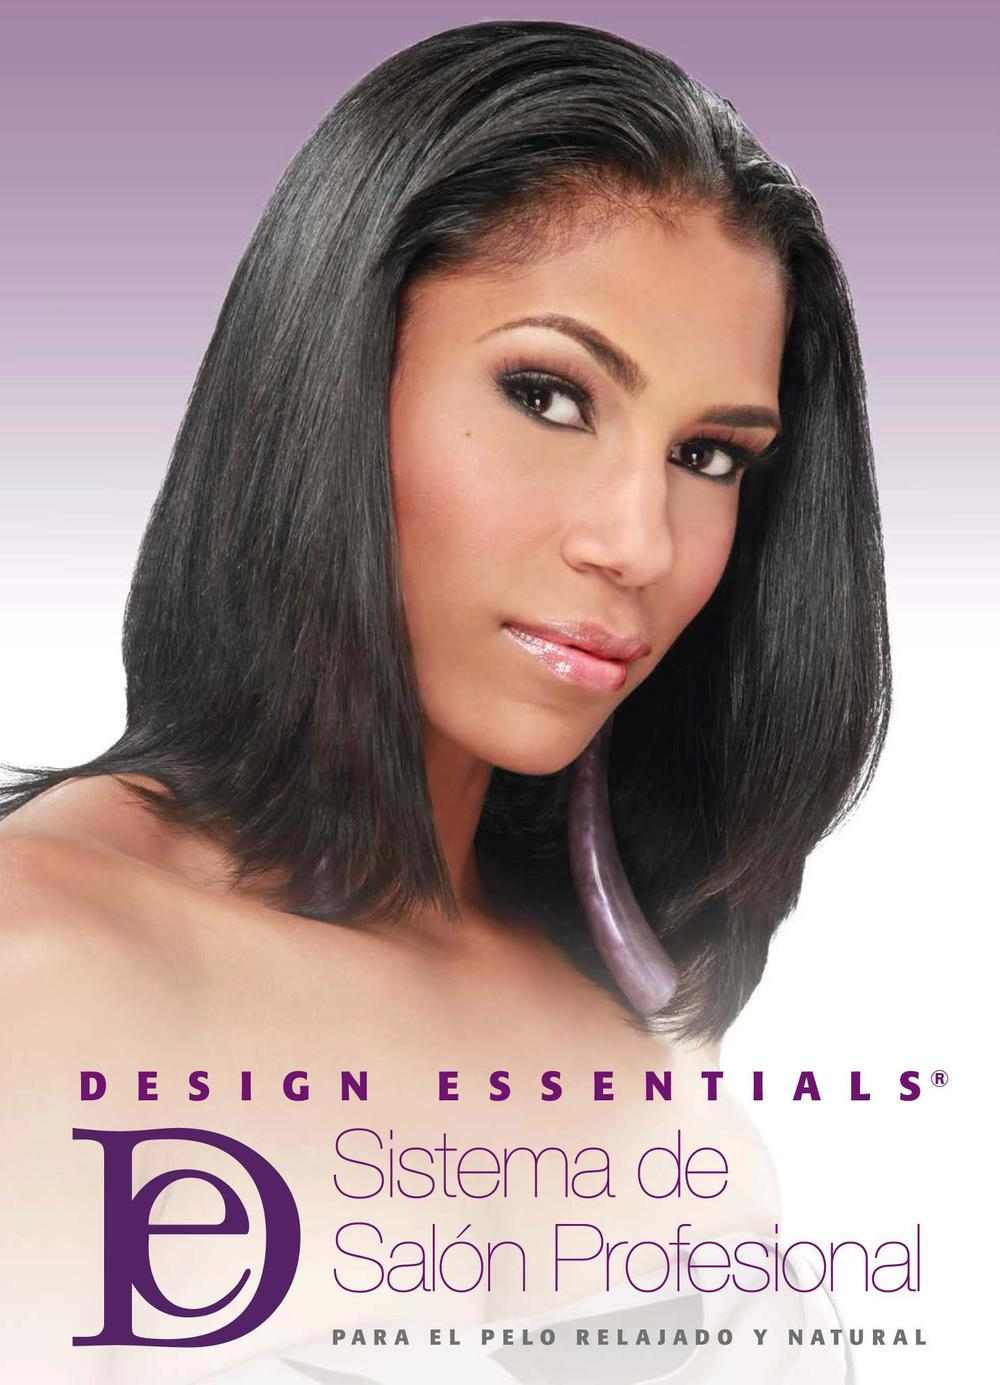 Spanish-Design-Essentials-sondreas signature styles salon and spa-ethnic-african american-women-black-el paso-texas